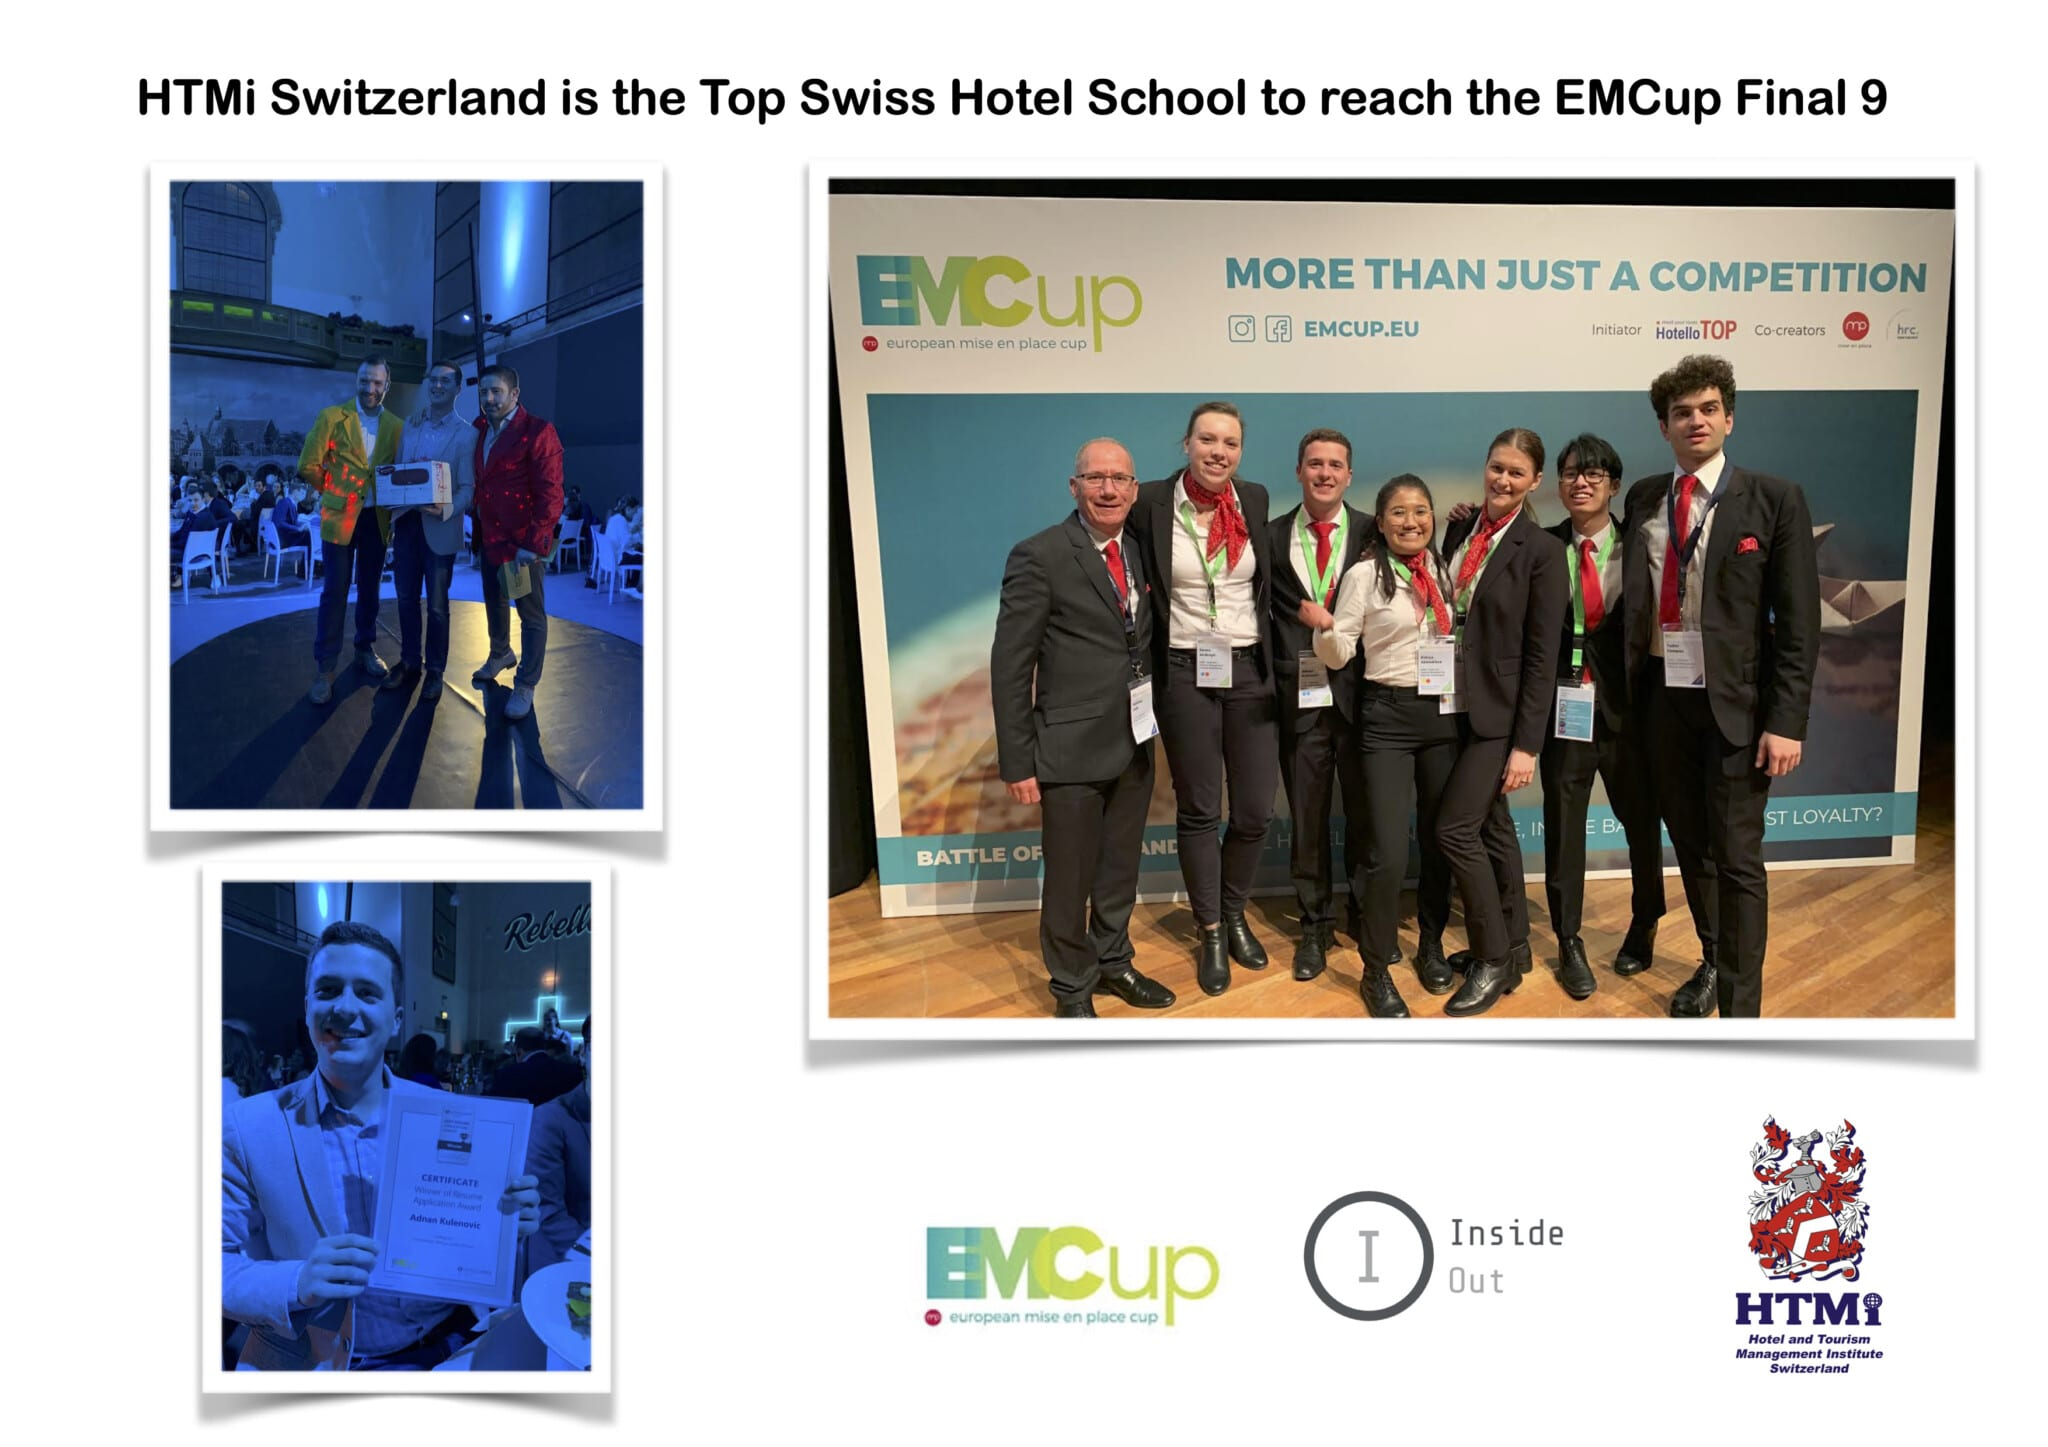 CONGRATULATIONS to HTMi Switzerland Team – Top Swiss Hotel School in European EMCup 2020